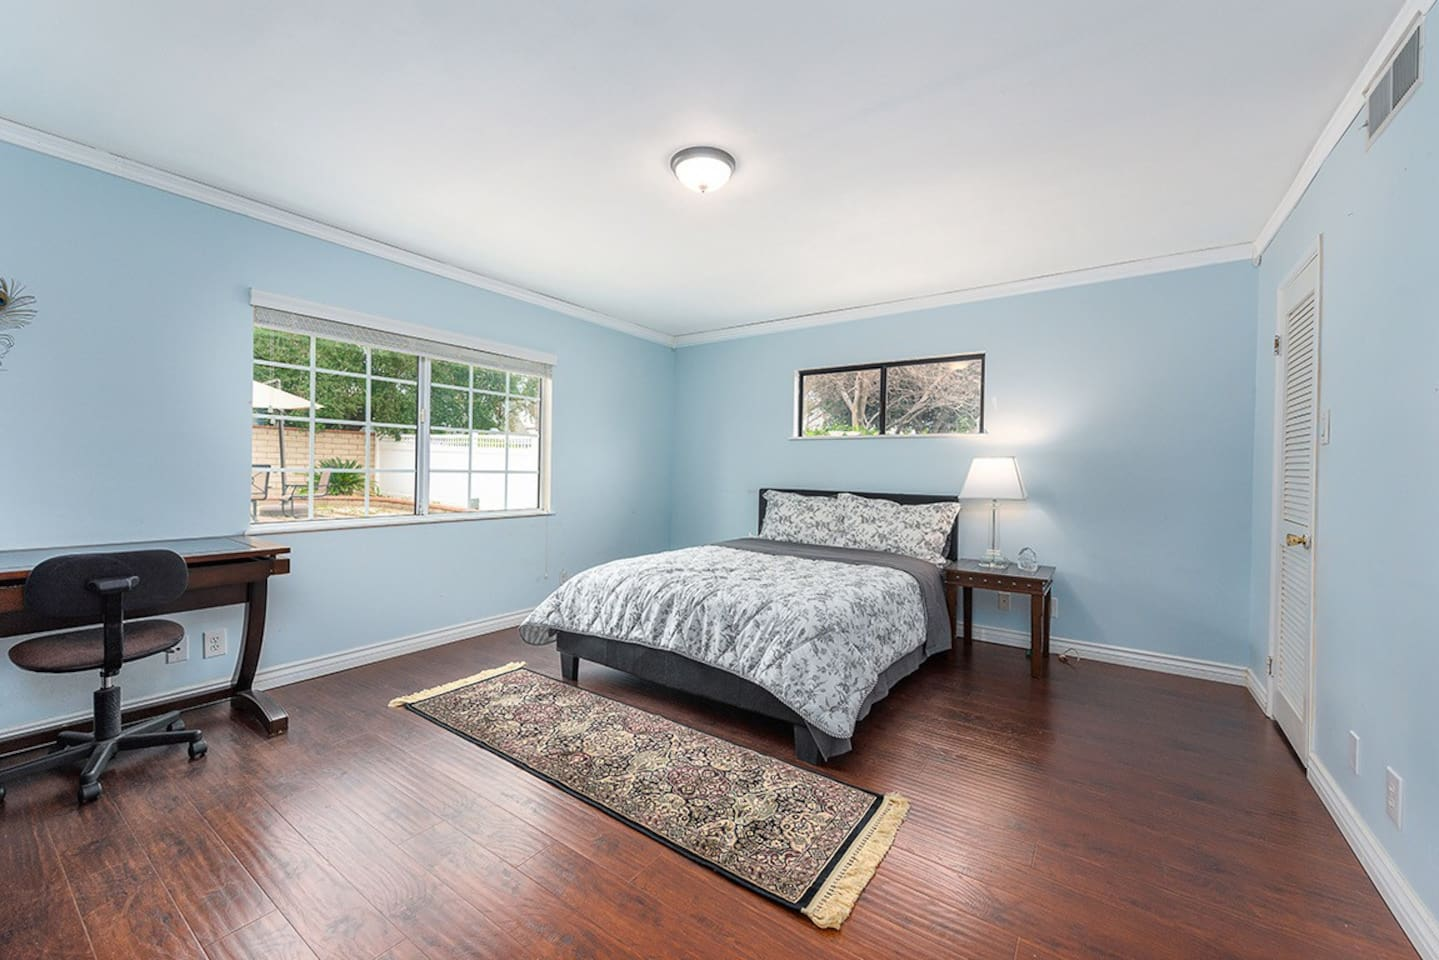 The spacious bedroom, available for adding a single bed, will fit 3 persons in your group, nice relaxing backyard view and walking closet. The single bed is advised in the following picture.